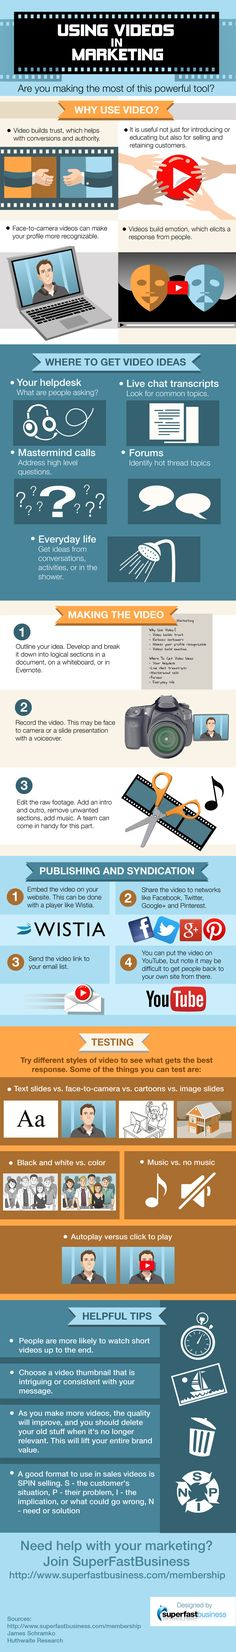 Using Videos In Marketing #infographic #Marketing #Videos